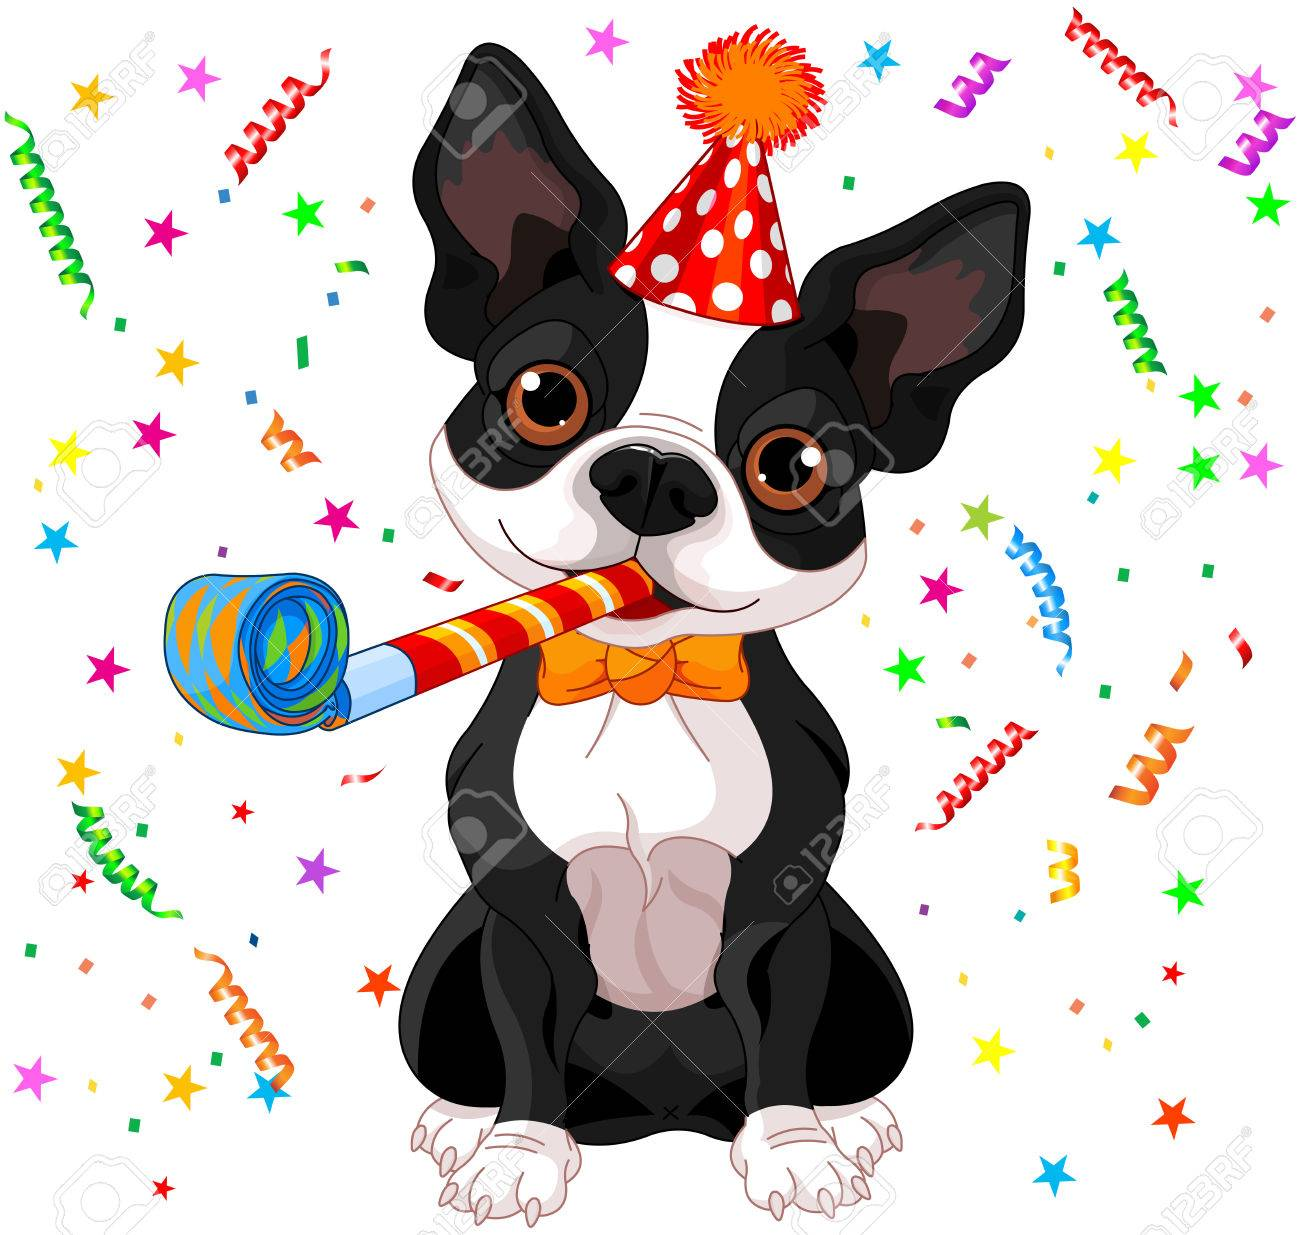 Comment nous rendons les animaux fous? 35588778-illustration-of-cute-boston-terrier-celebrating